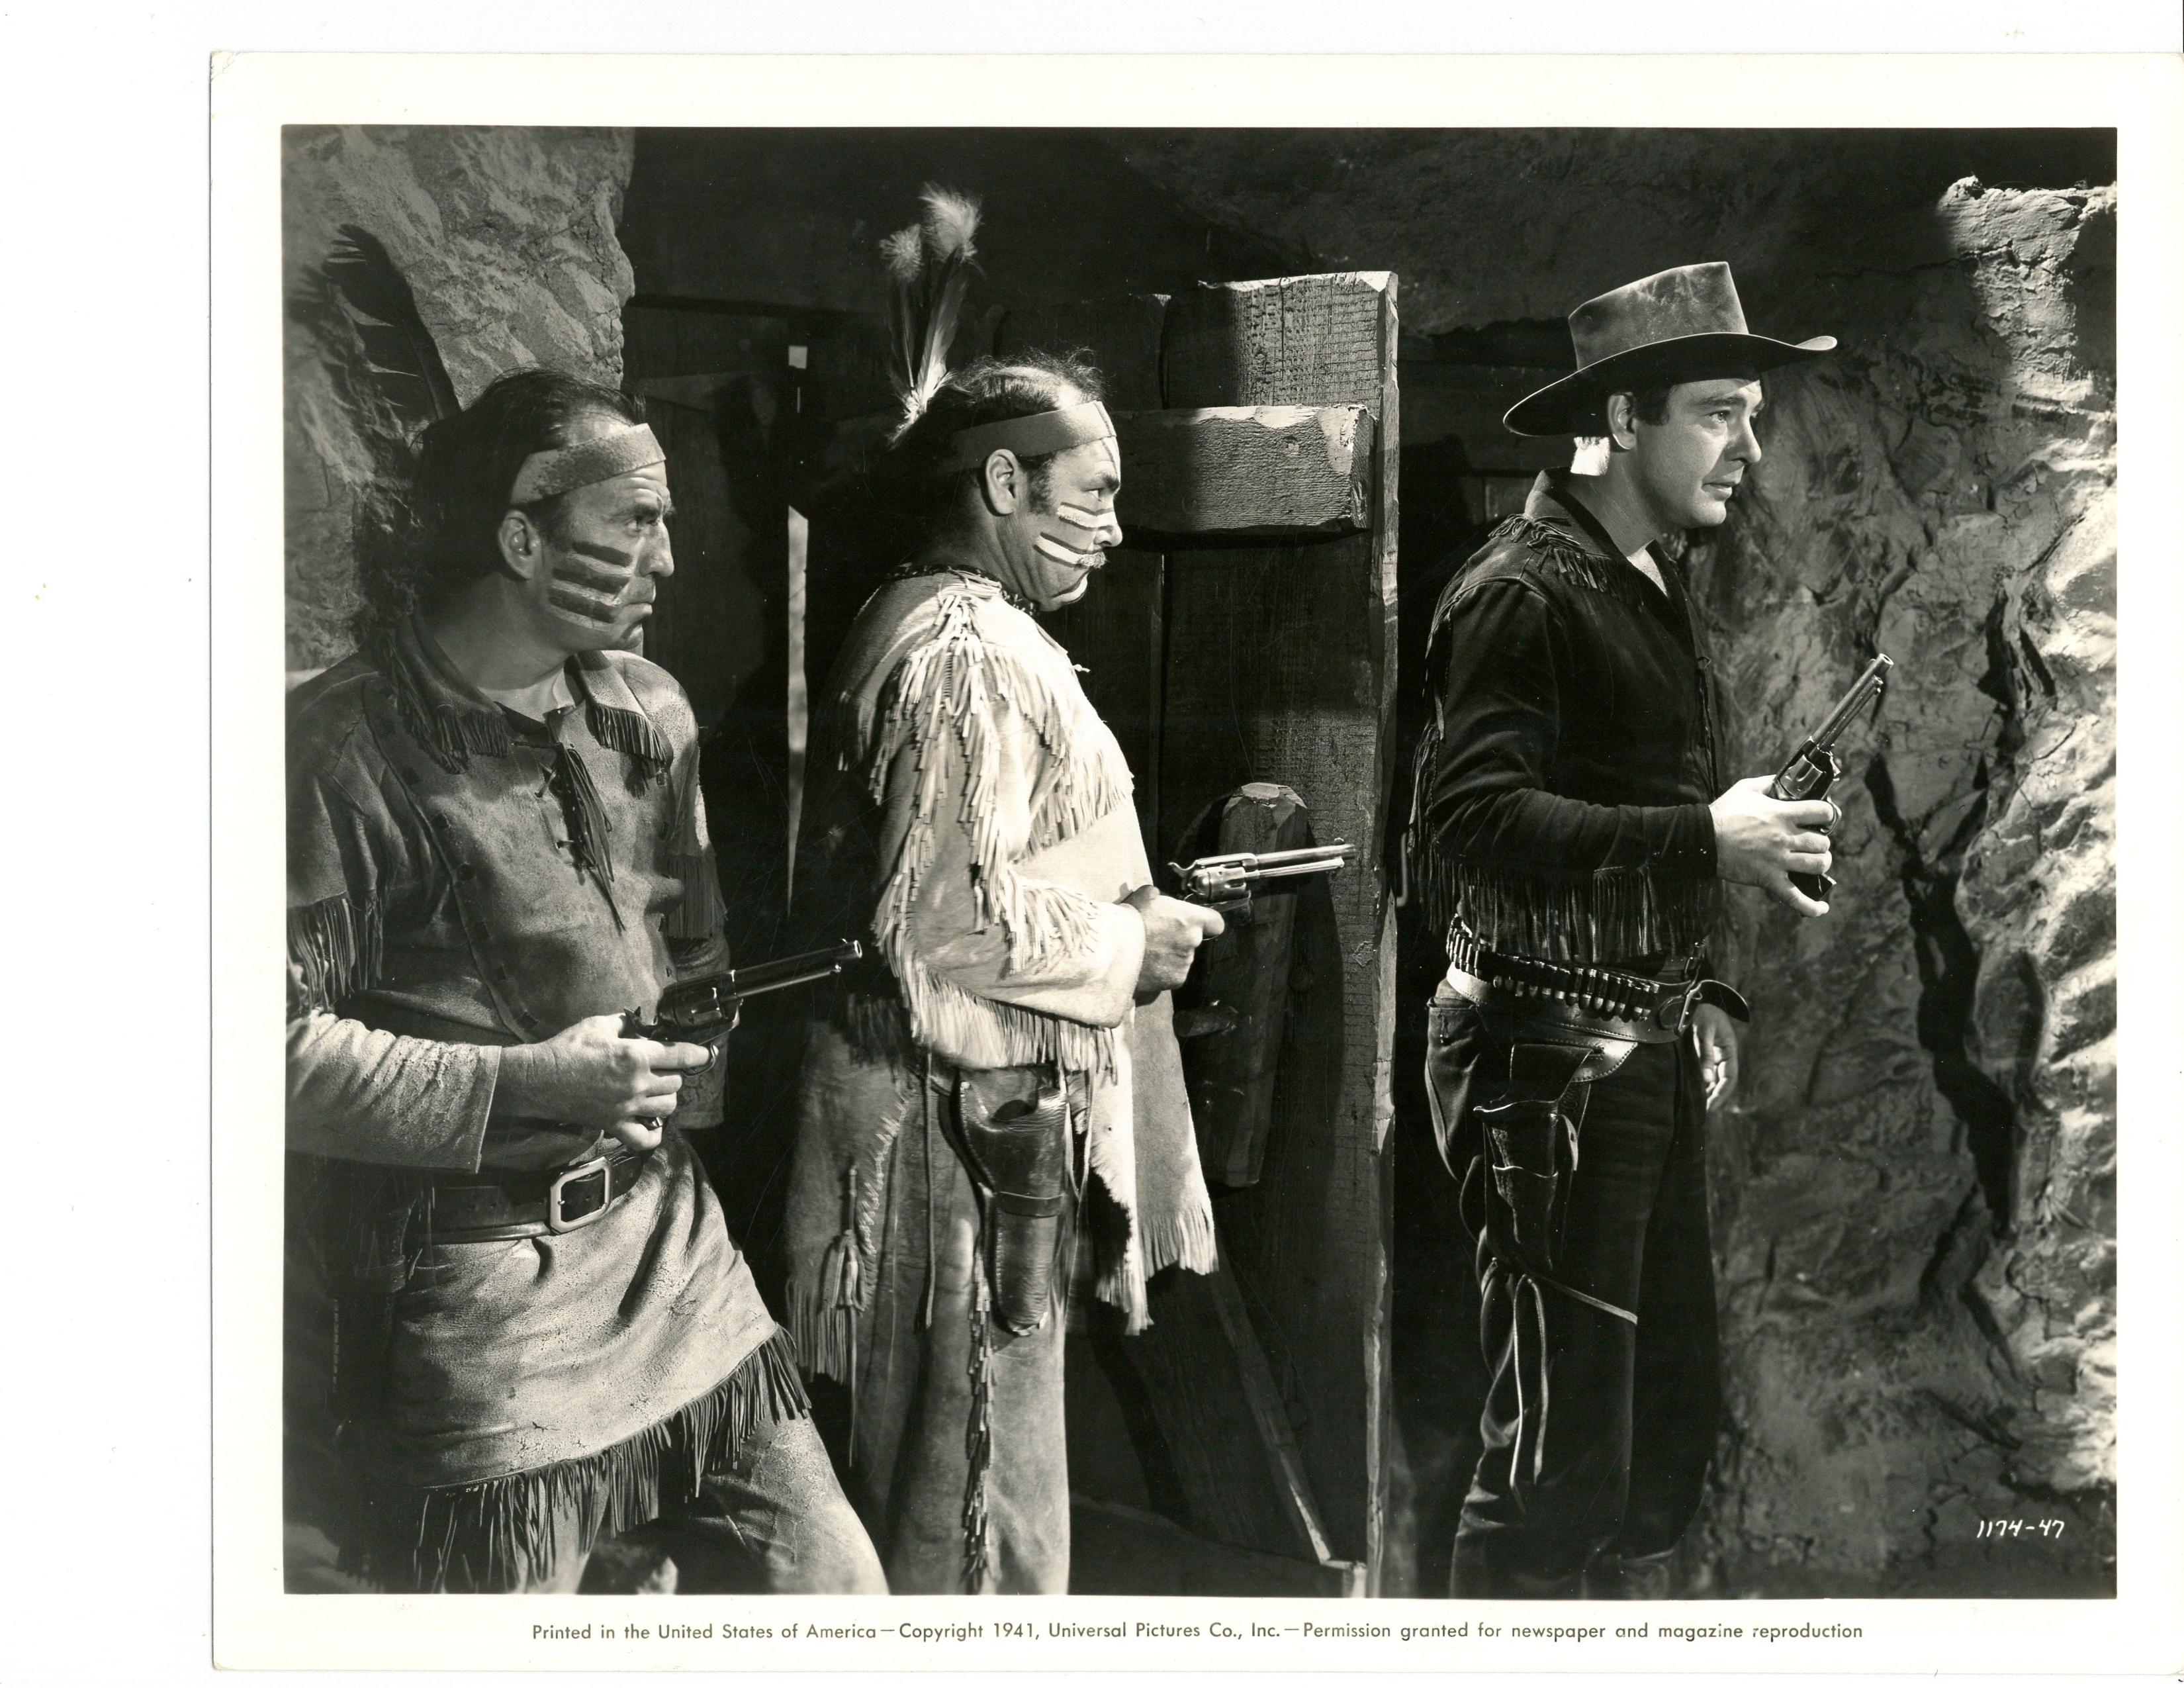 Lon Chaney Jr., Harry Cording, and Ethan Laidlaw in Overland Mail (1942)